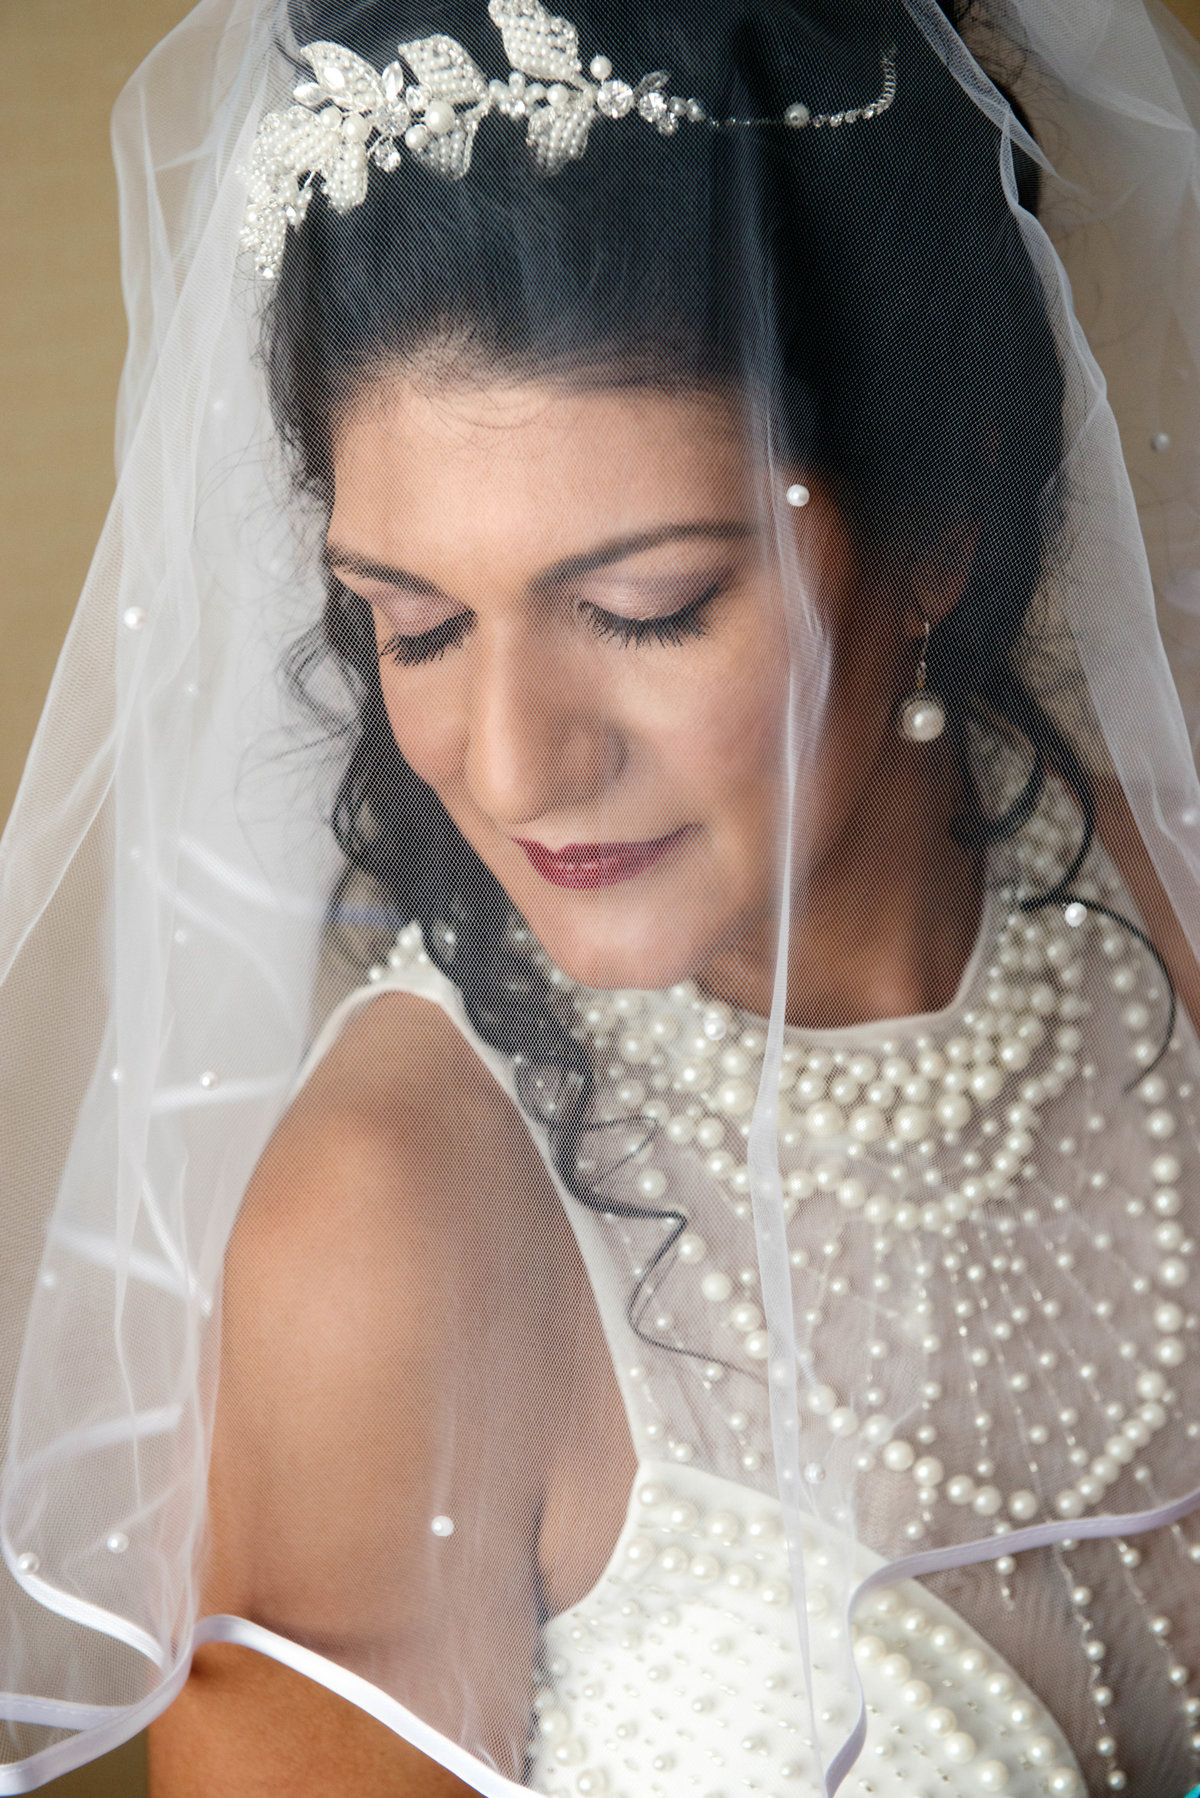 Bridal portrait in veil at hilton garden inn yuma az